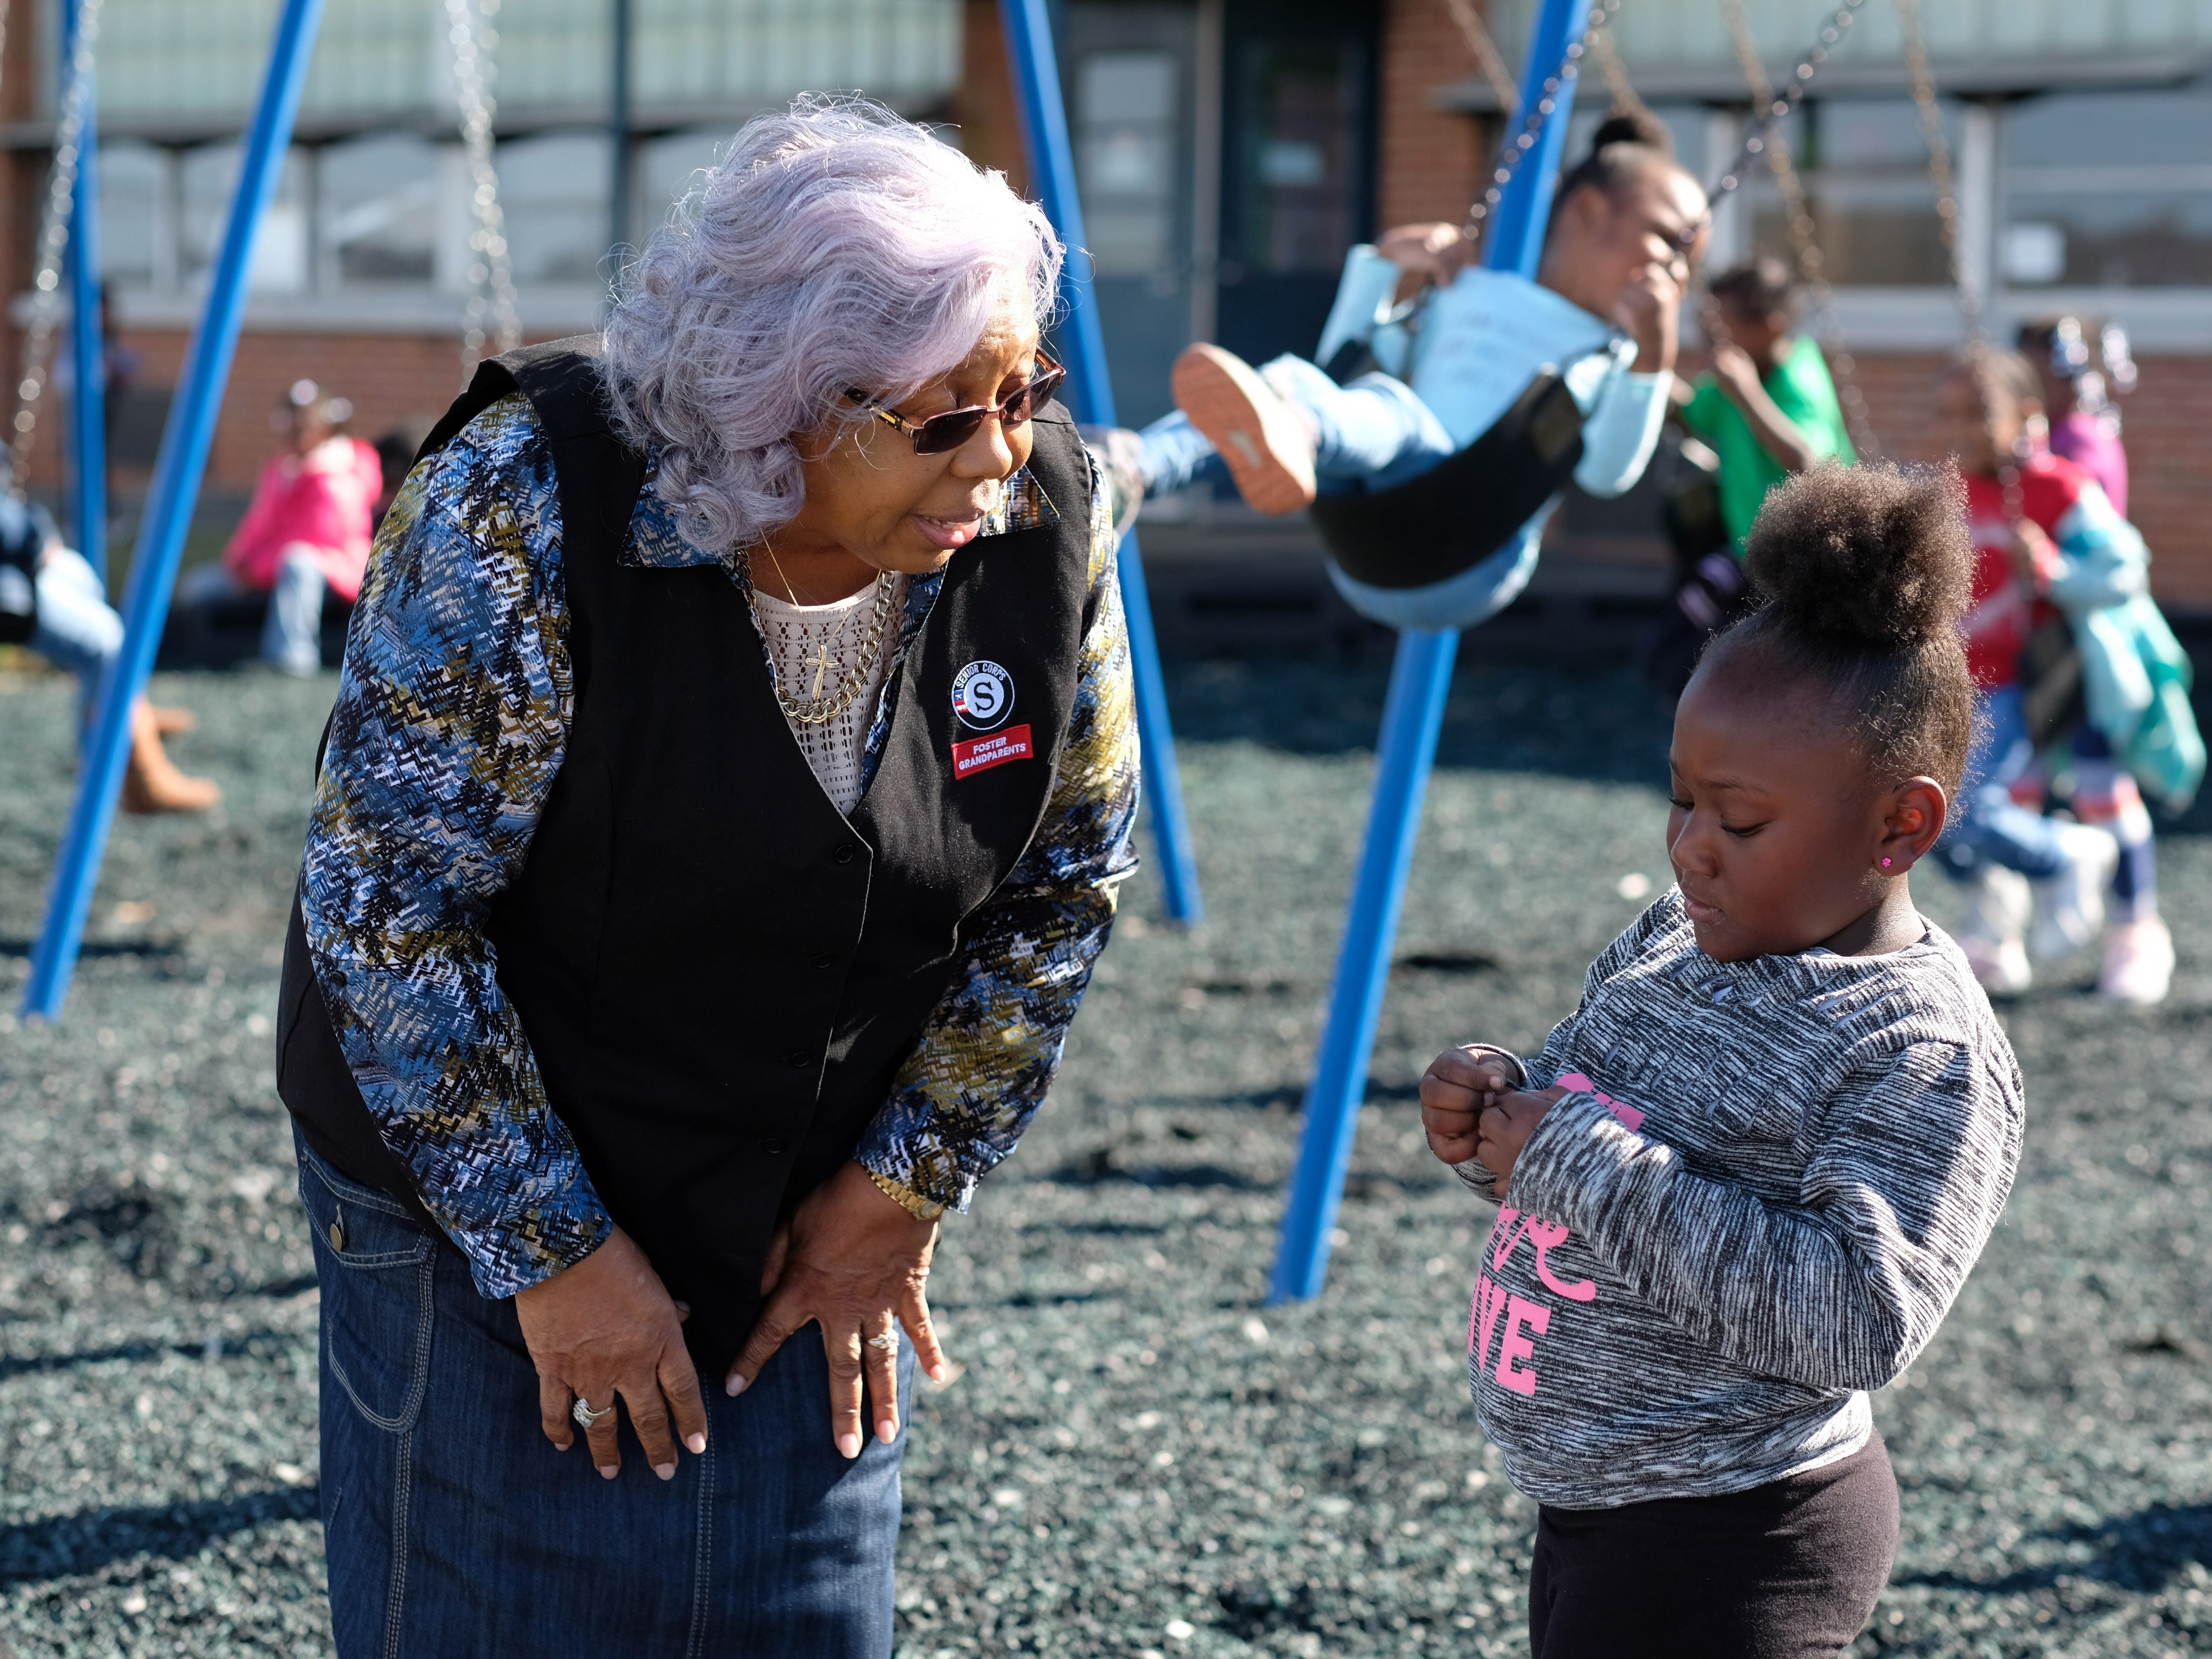 Foster Grandparent Hattie Crockett speaks with kindergartner Camilya Wolble during recess at Green Magnet Academy on Wednesday, November 7, 2018 in Knoxville. Crockett has been serving as a Foster Grandparent along with her sister Lena Morrison for three years in Knoxville.